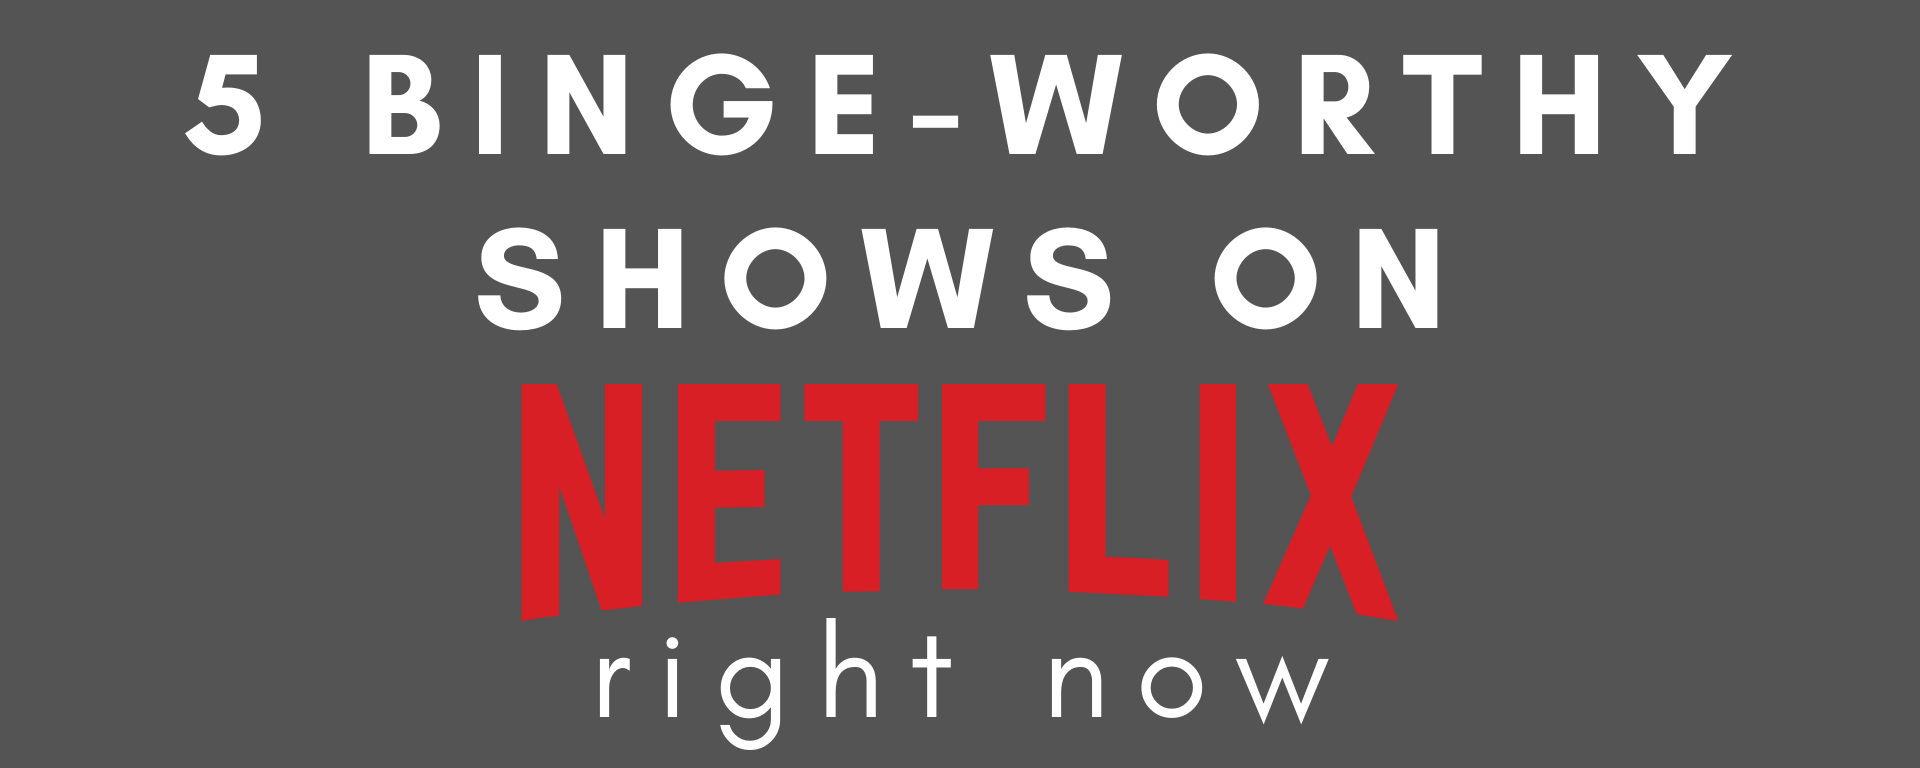 """A grey background with the text """"5 Binge-Worthy Shows on Netflix Right Now"""""""